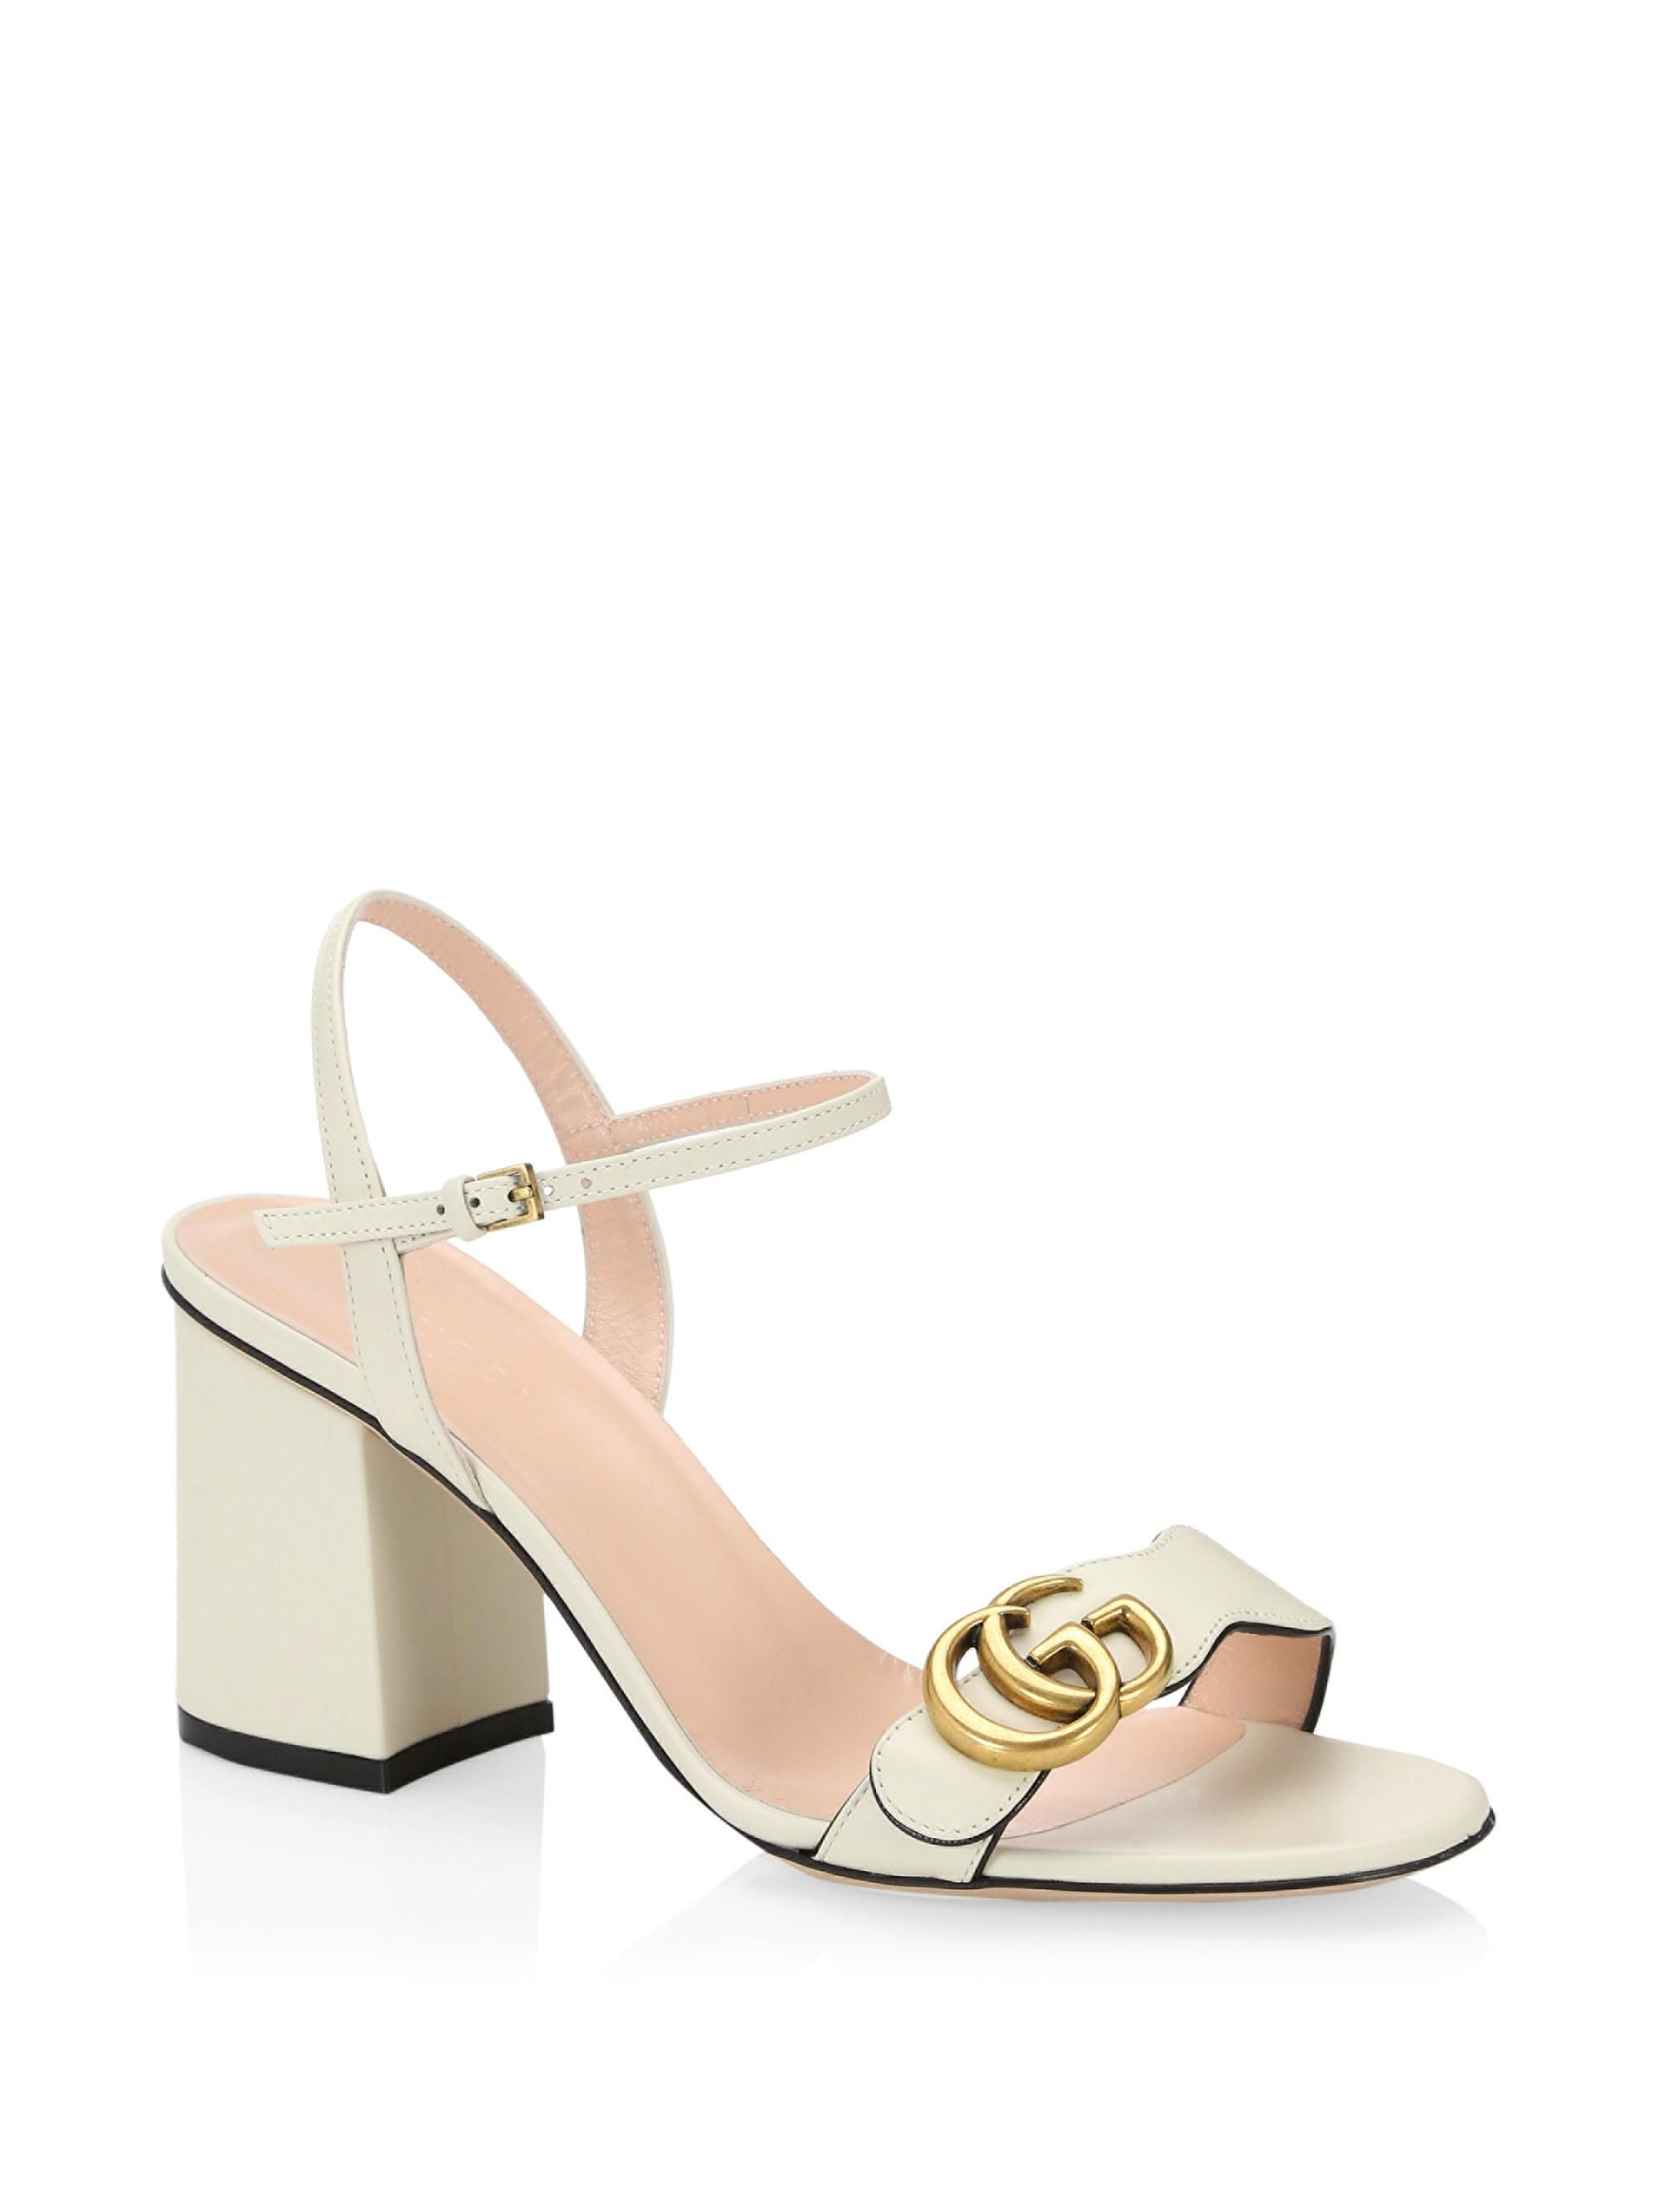 28eb5b528 Gucci - Multicolor Marmont GG Ankle-strap Sandals - Lyst. View fullscreen